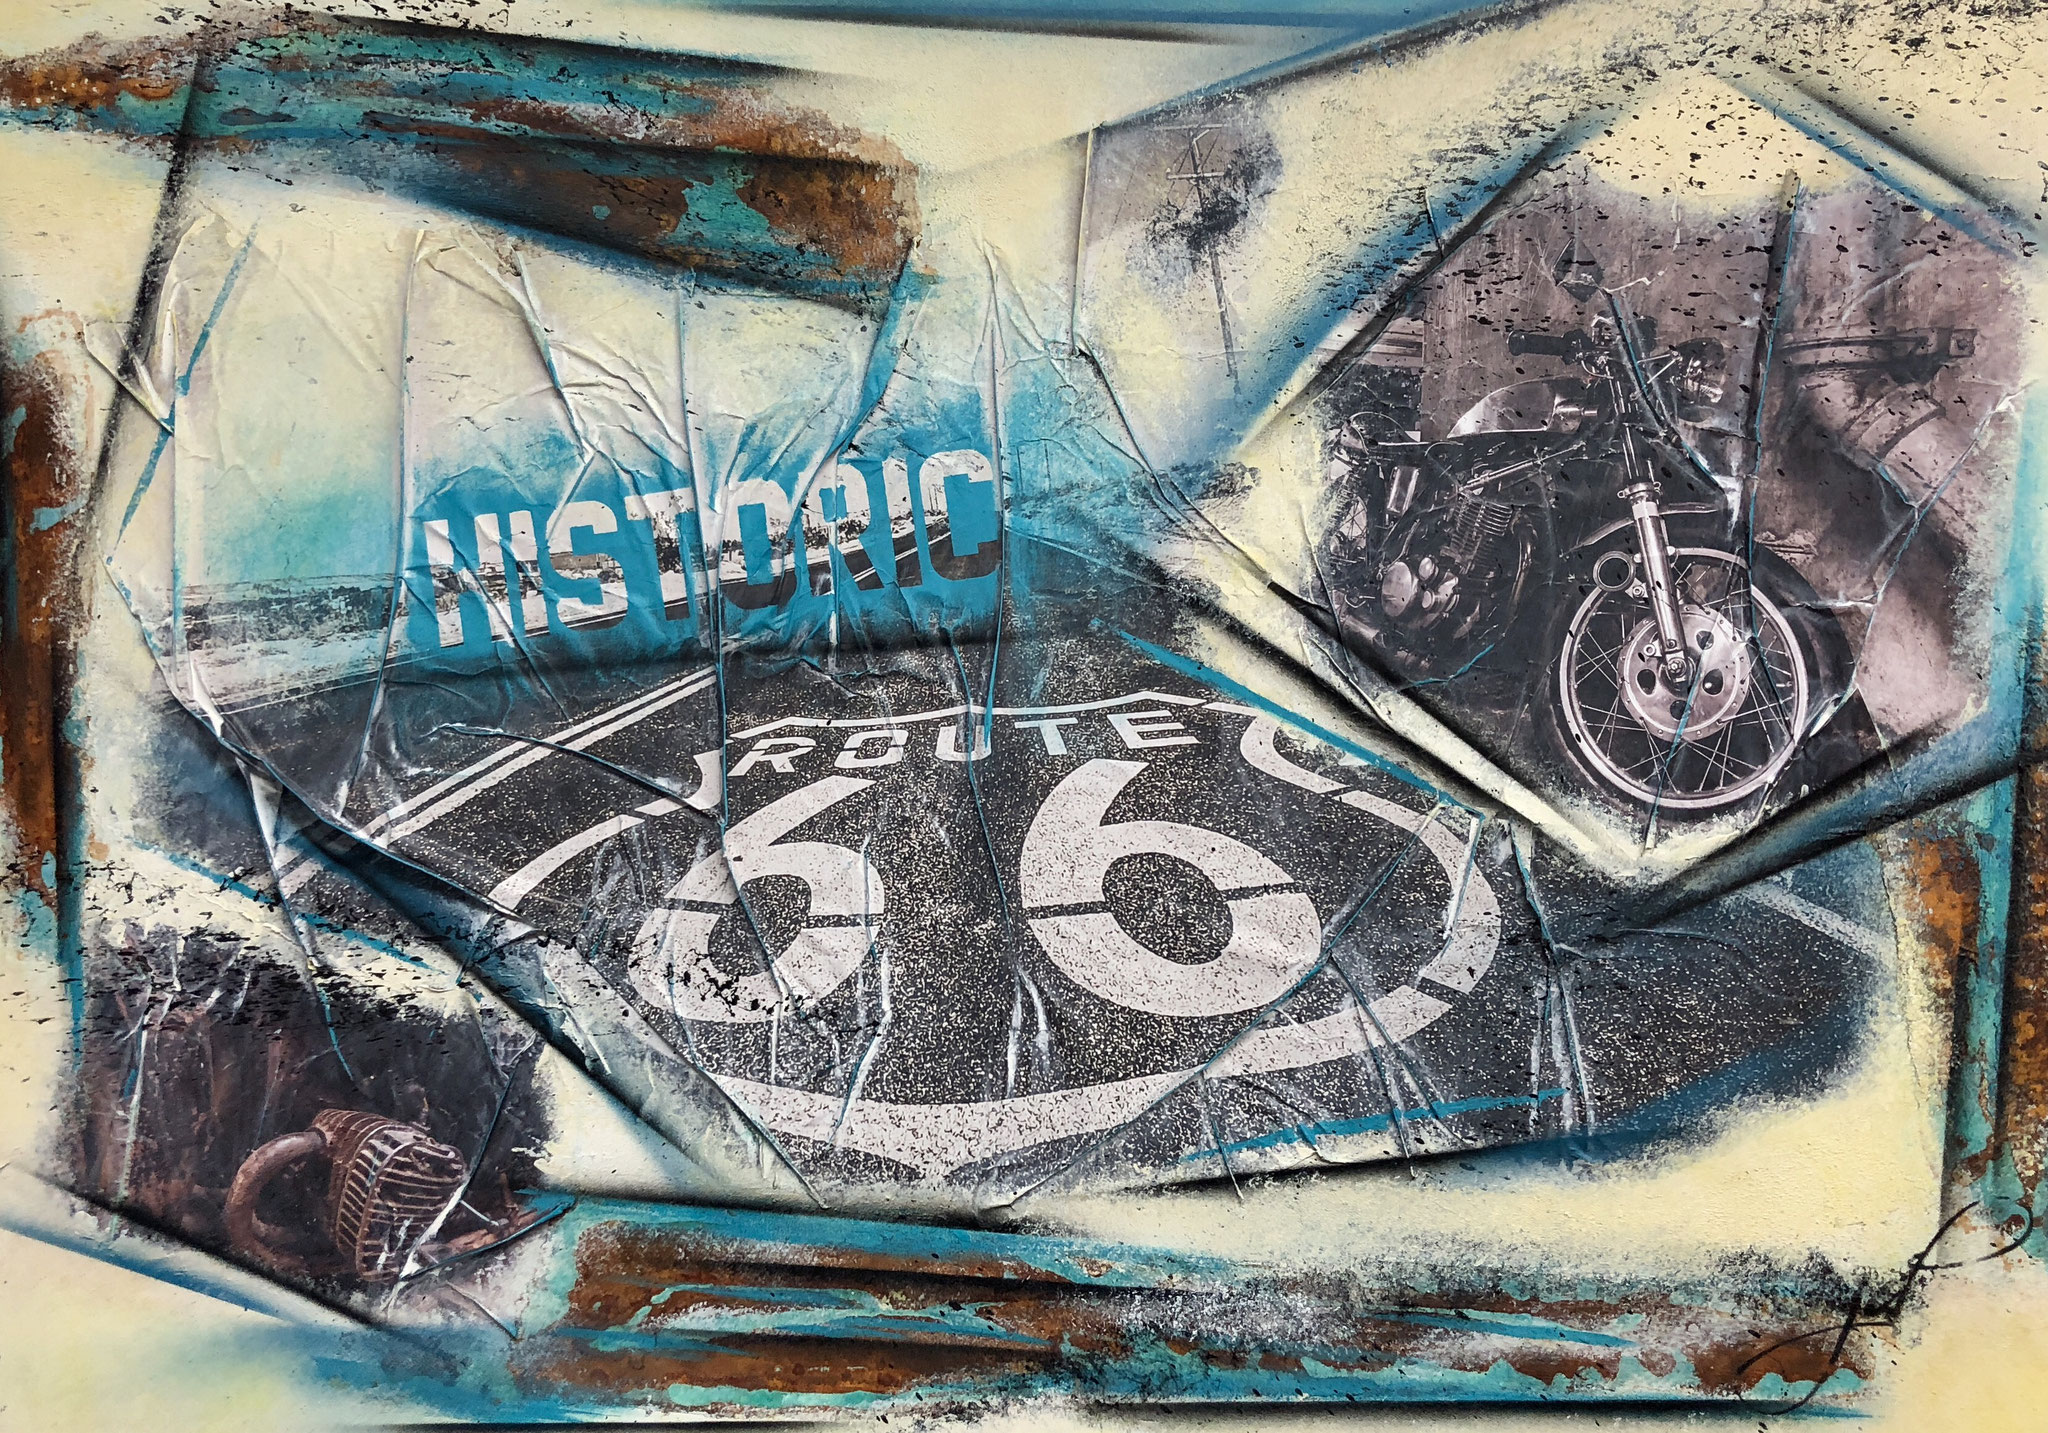 70 x 100 cm / Historic-Route66 / Canvas and Mixmedia / 2018